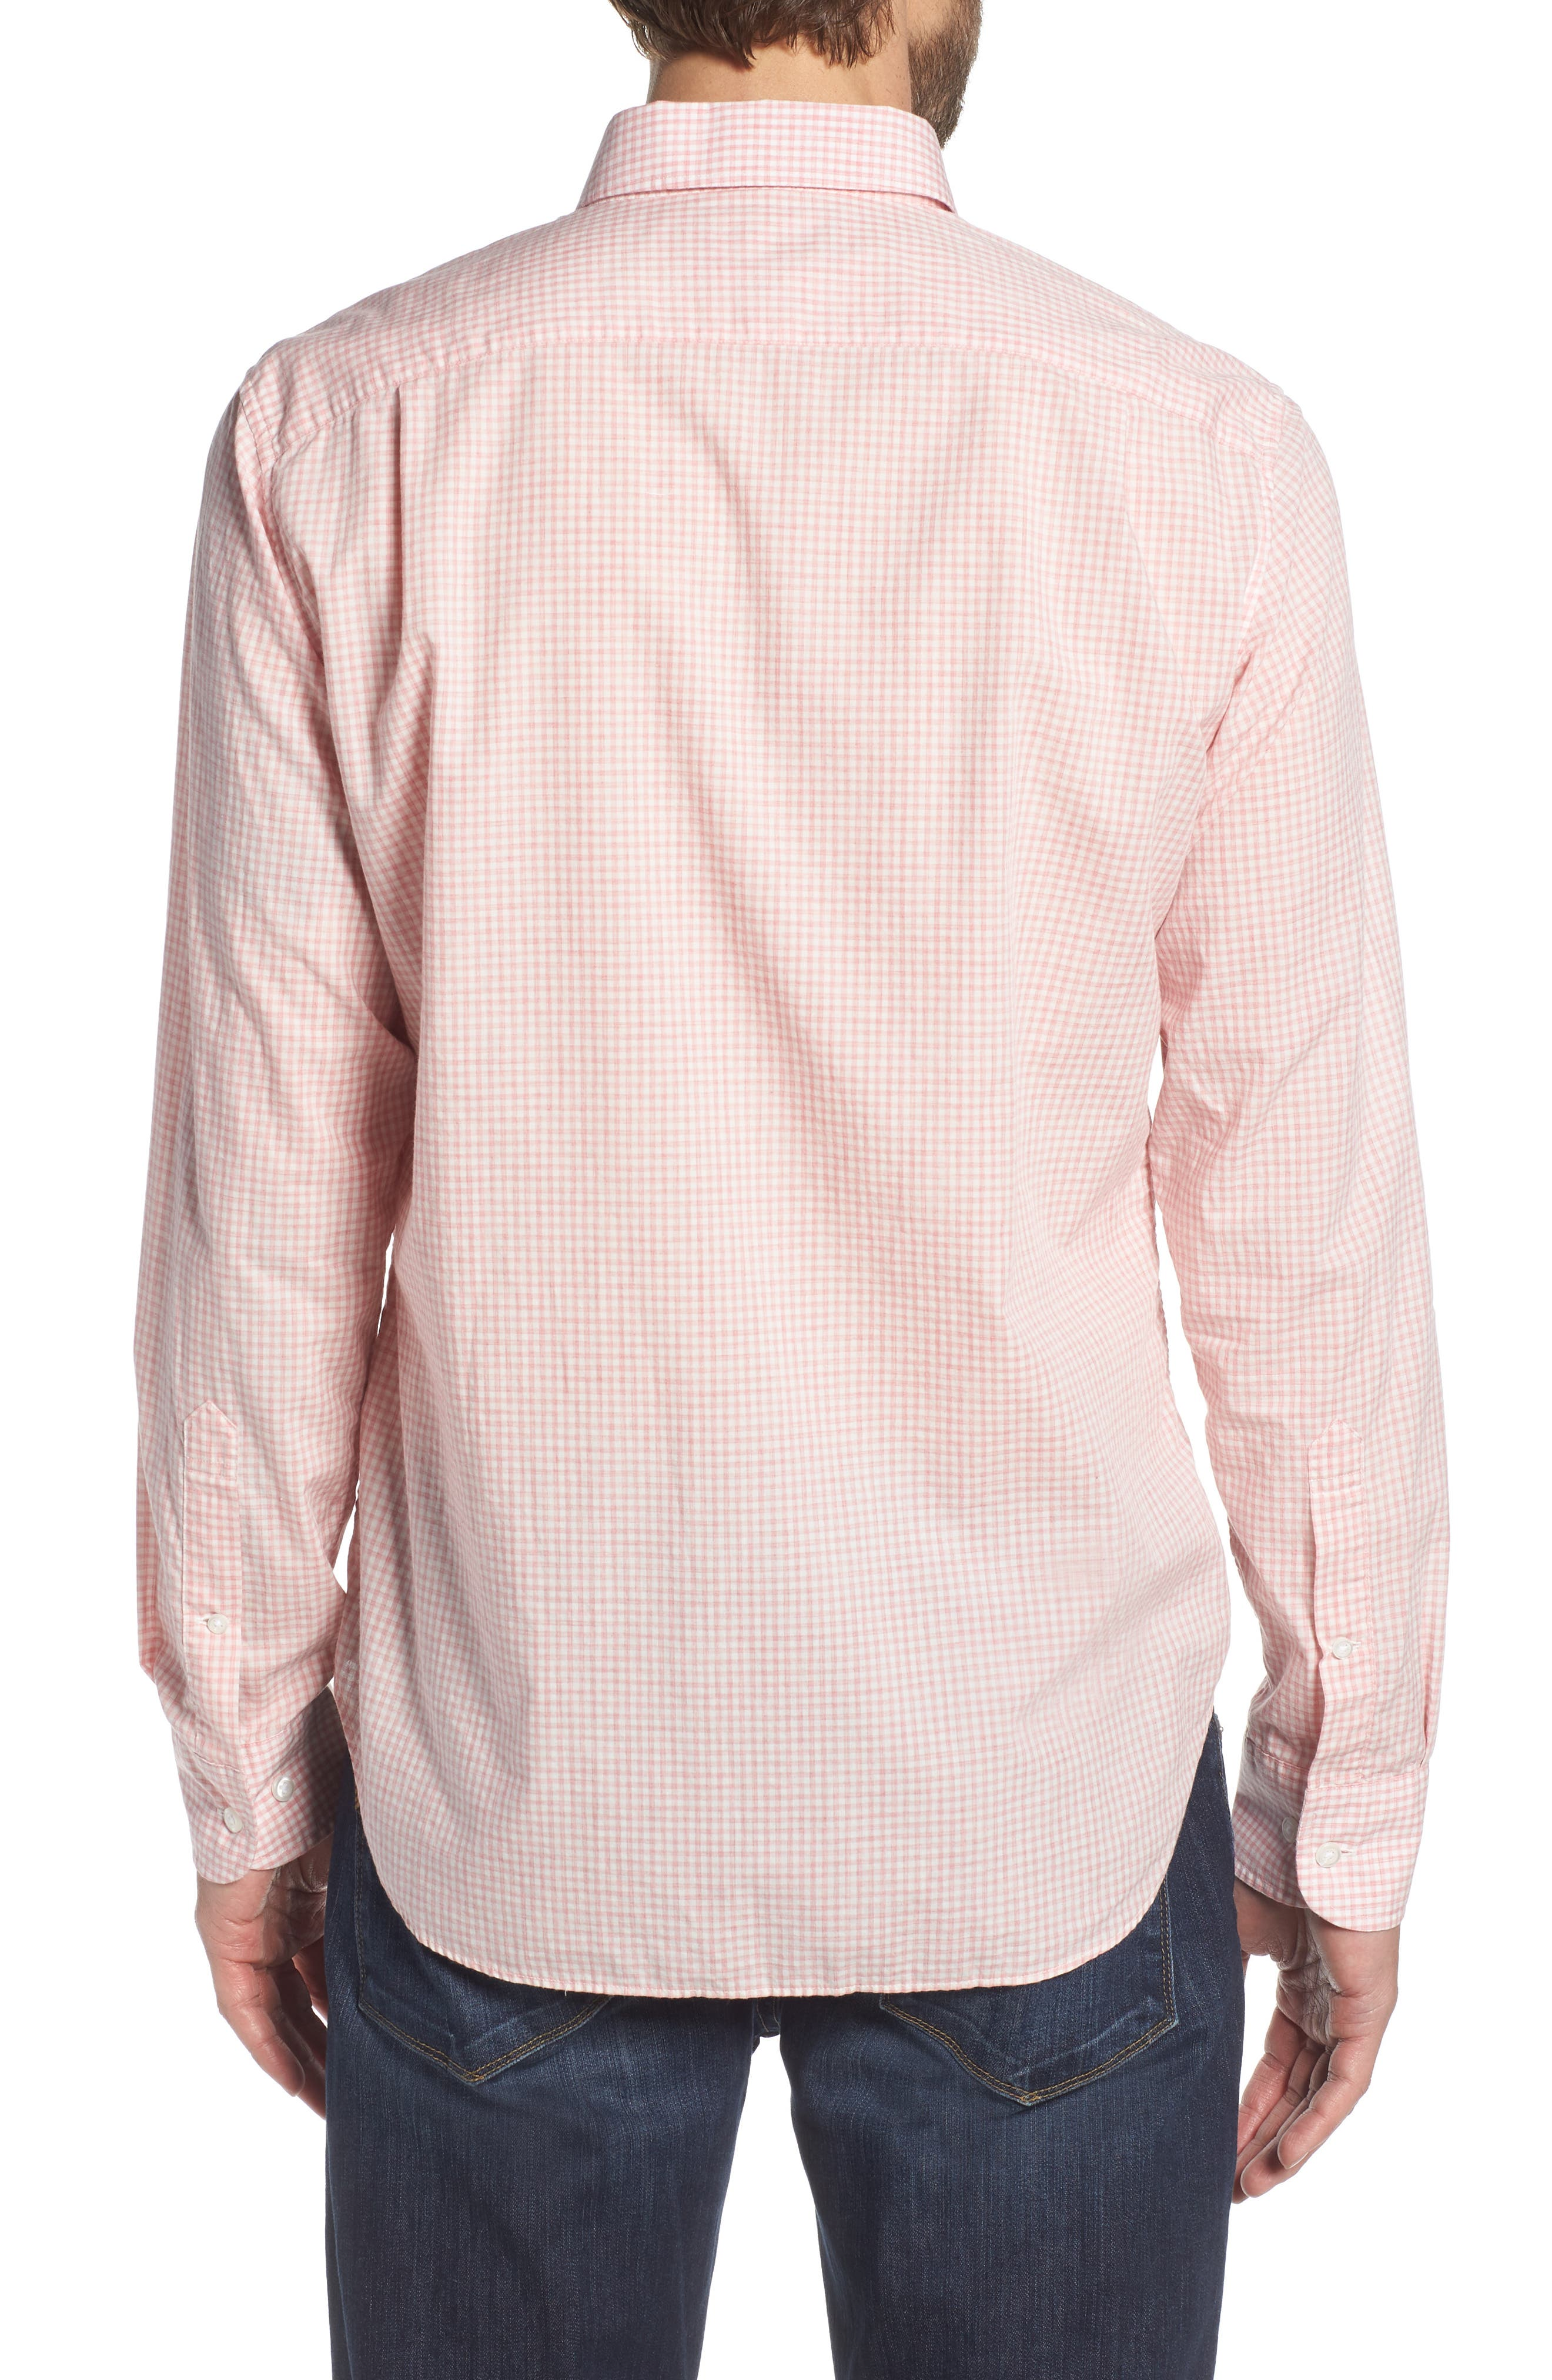 Summerweight Slim Fit Check Sport Shirt,                             Alternate thumbnail 3, color,                             Mini Gingham - Heather Rose